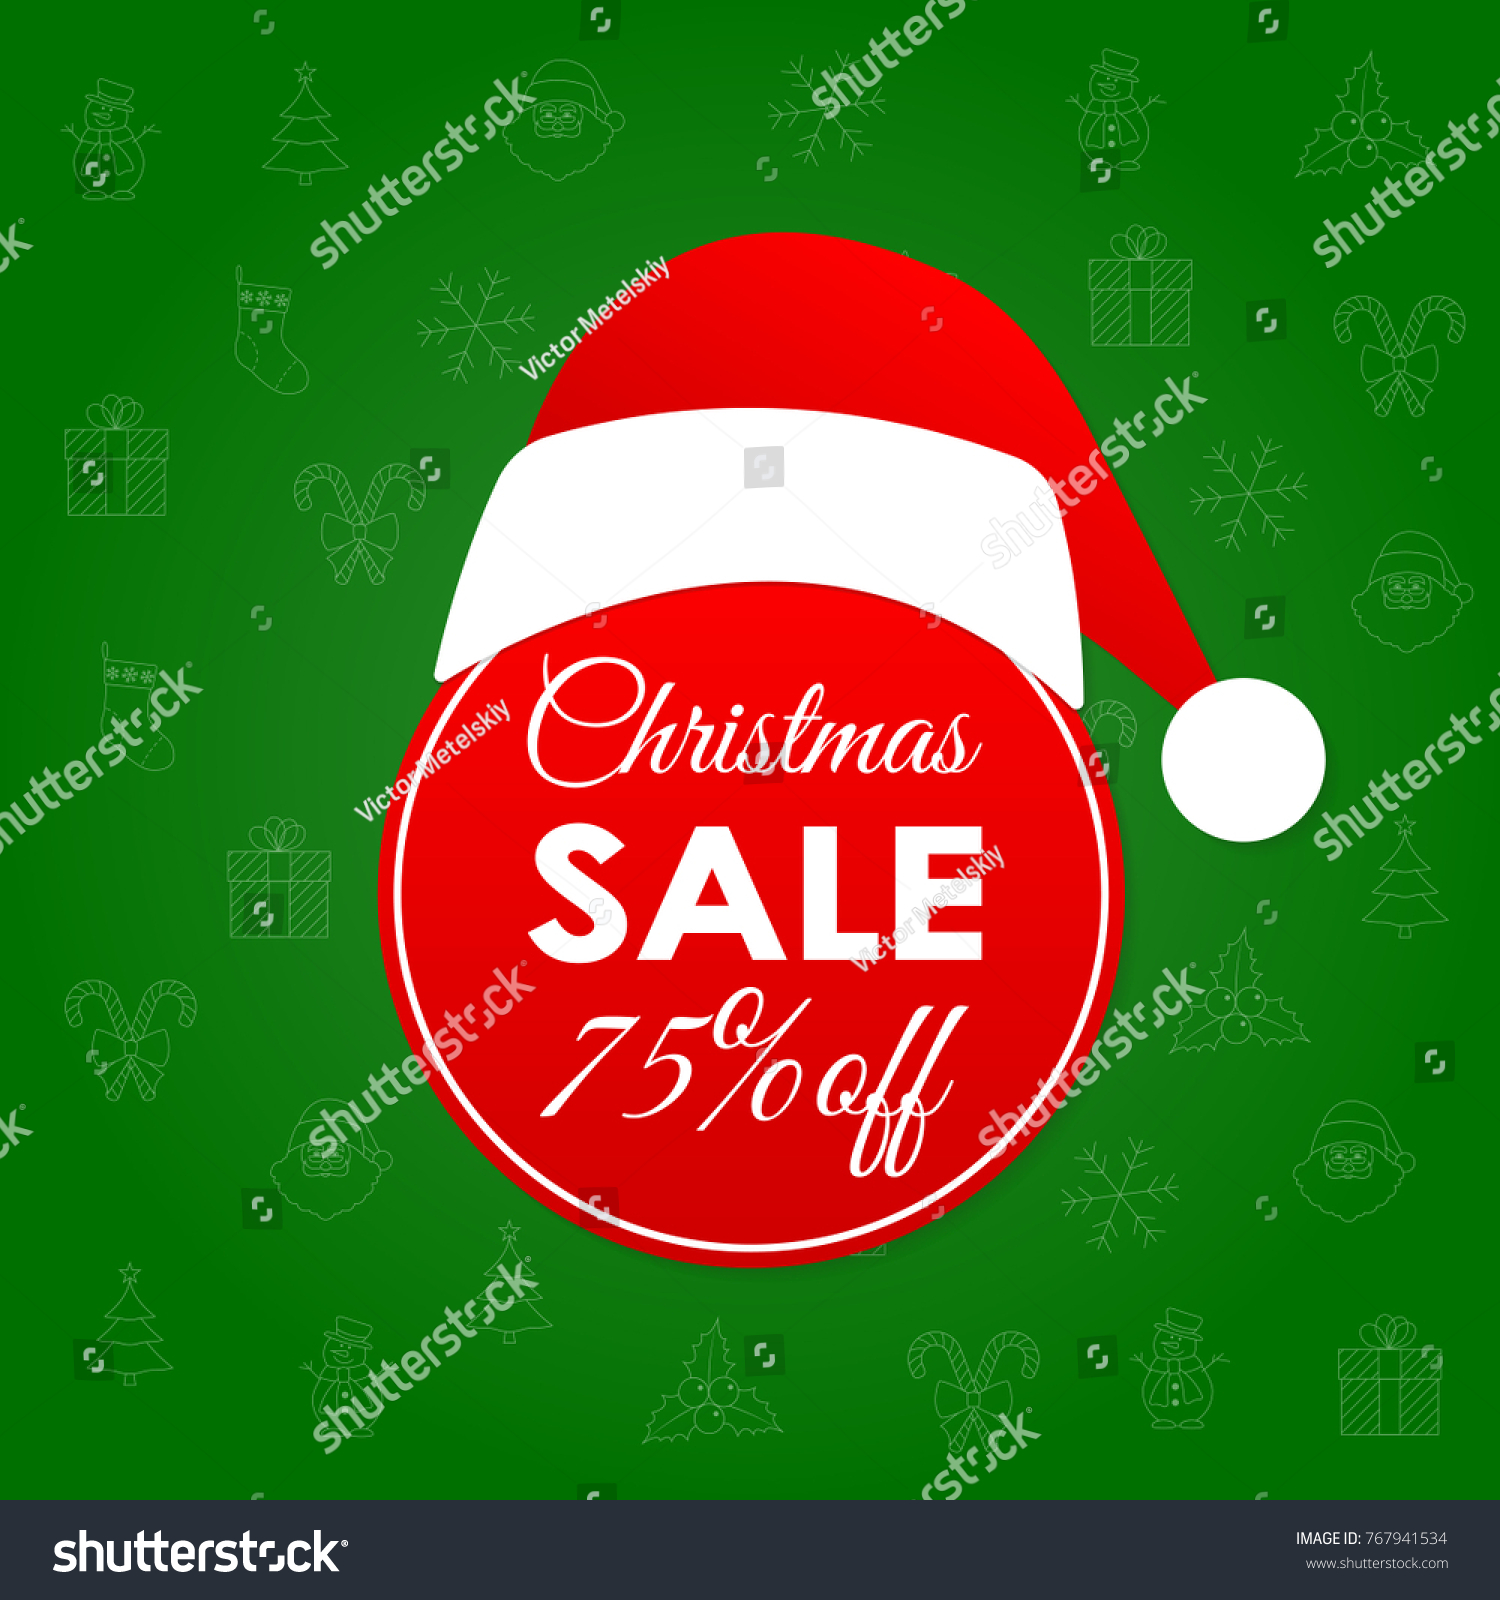 christmas sale and discount banner 75 percent price off xmas and holiday badge or